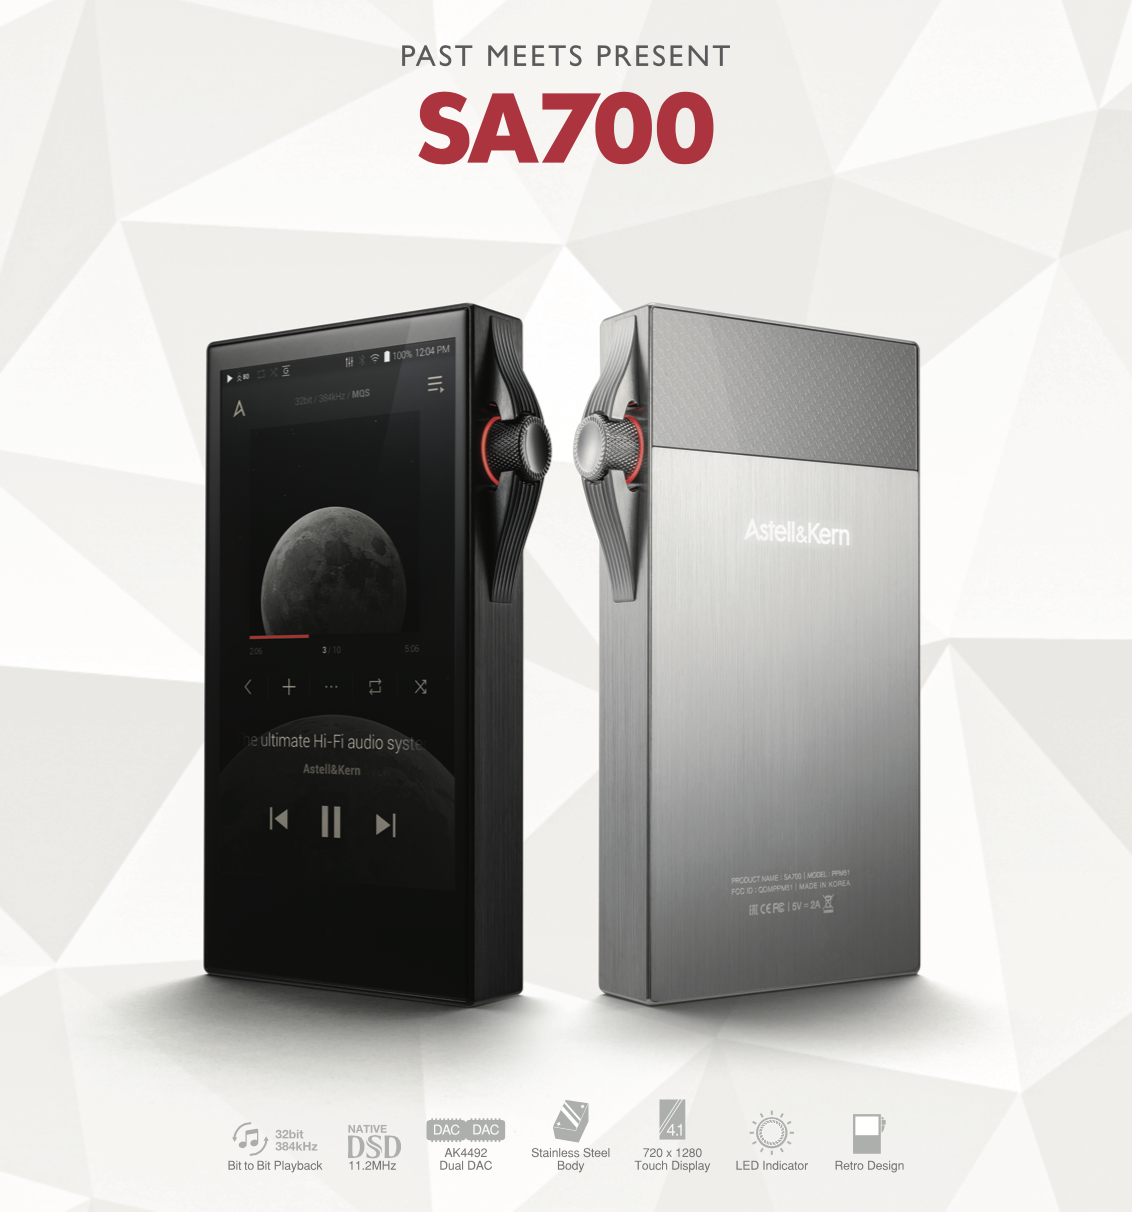 Astell n Kern presents the SA700 music player